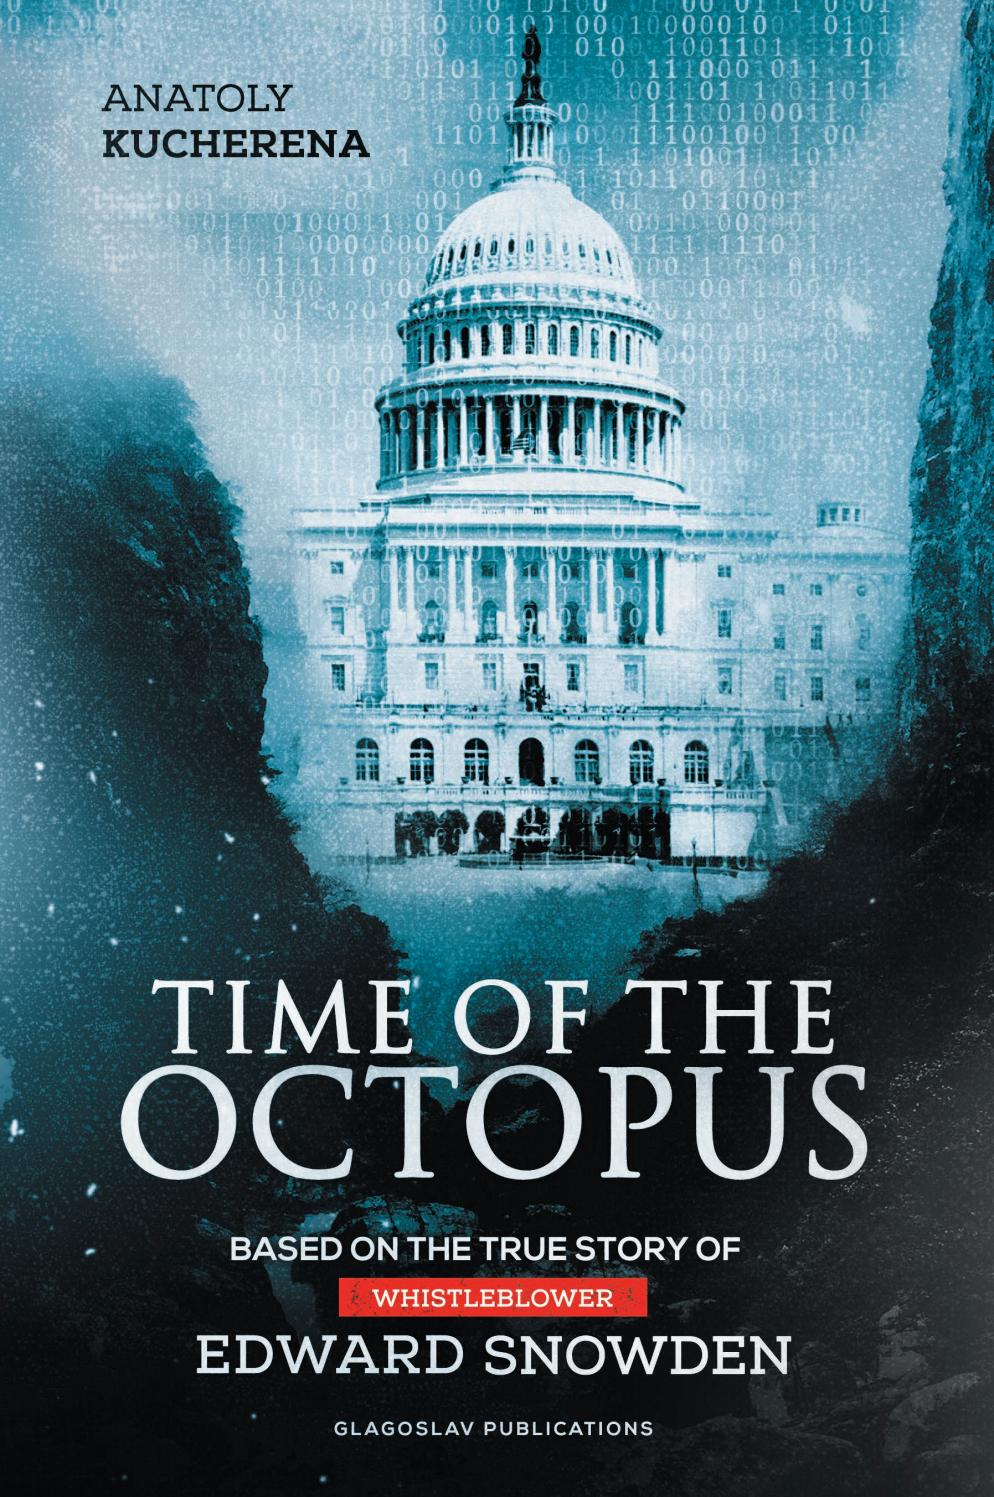 Time of the Octopus – Based on the true story of Edward